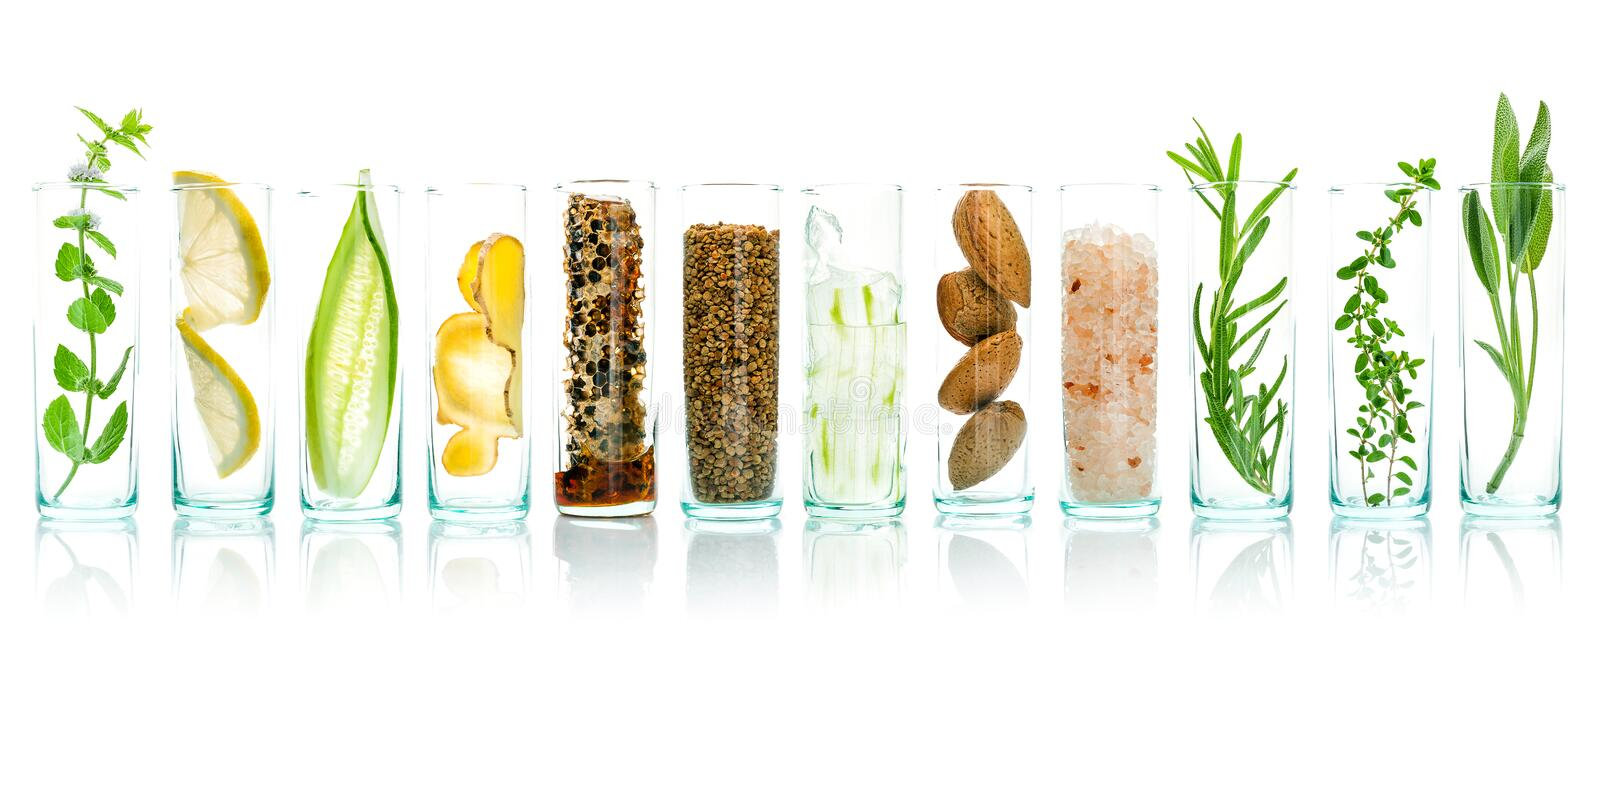 Homemade skin care with natural ingredients aloe vera, lemon, cu. Cumber, himalayan salt, peppermint, rosemary, almonds, cucumber, ginger and honey pollen stock image